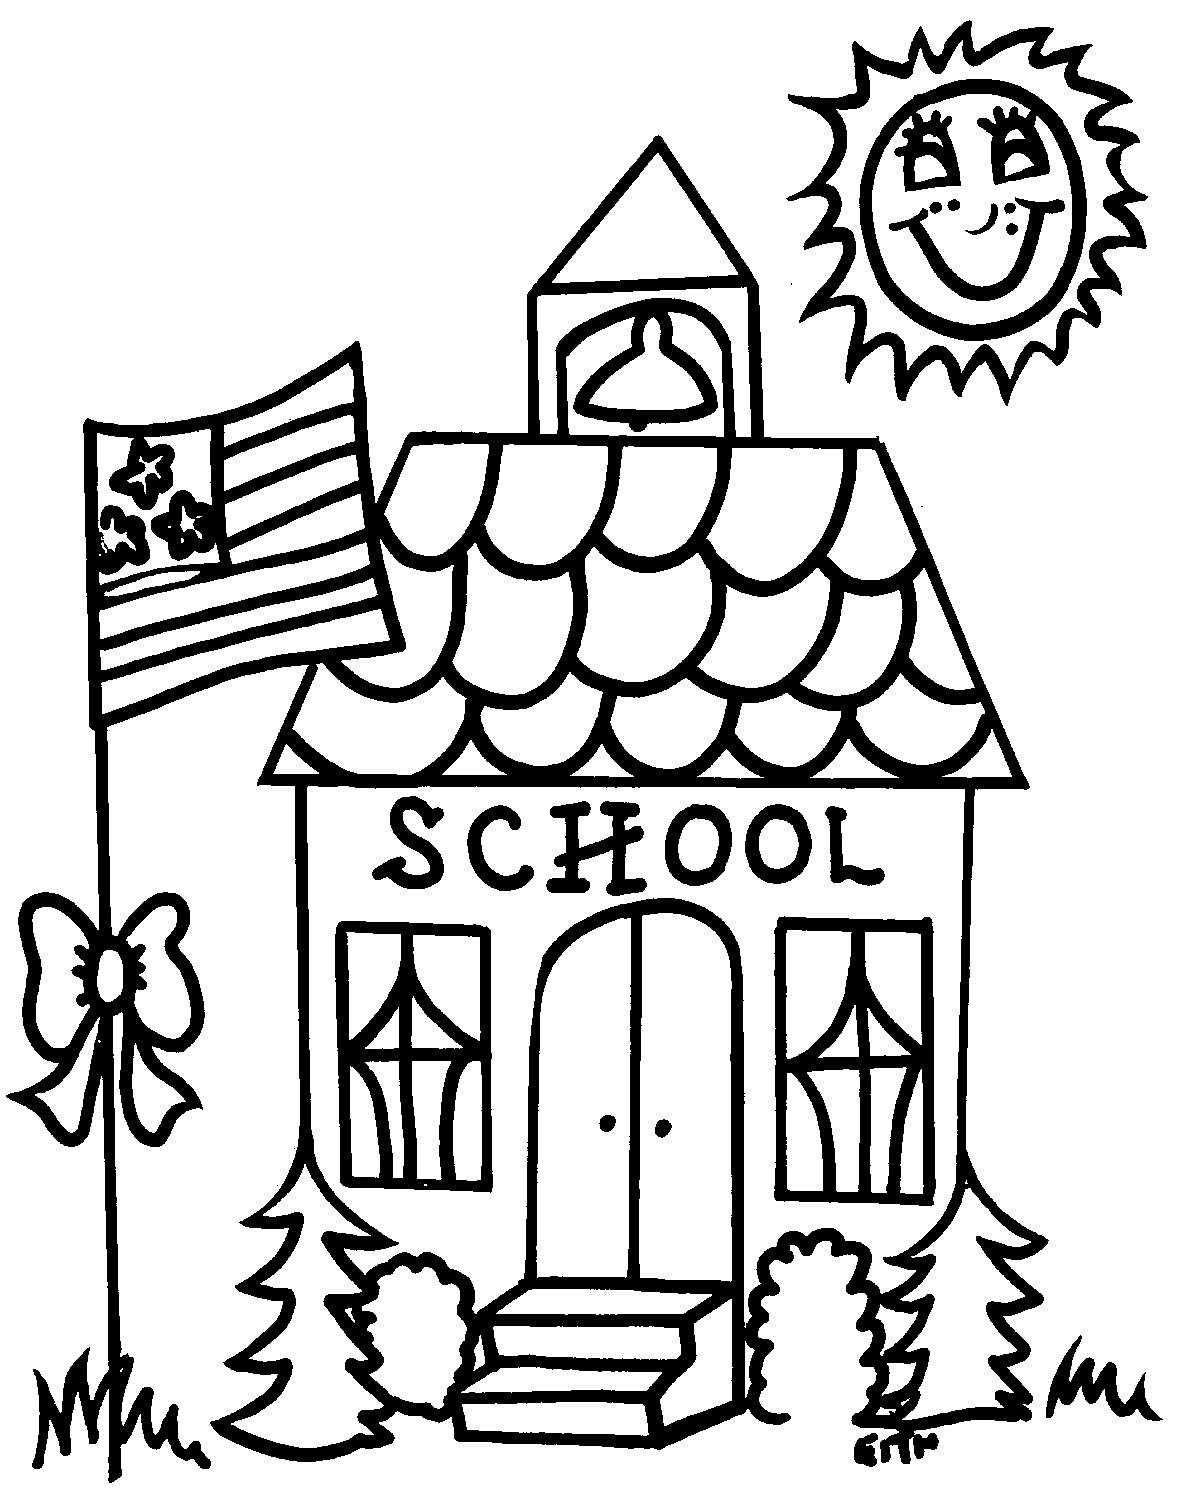 Coloring Pages : Back To School Coloring Pages Free Free Coloring - Back To School Free Printable Coloring Pages